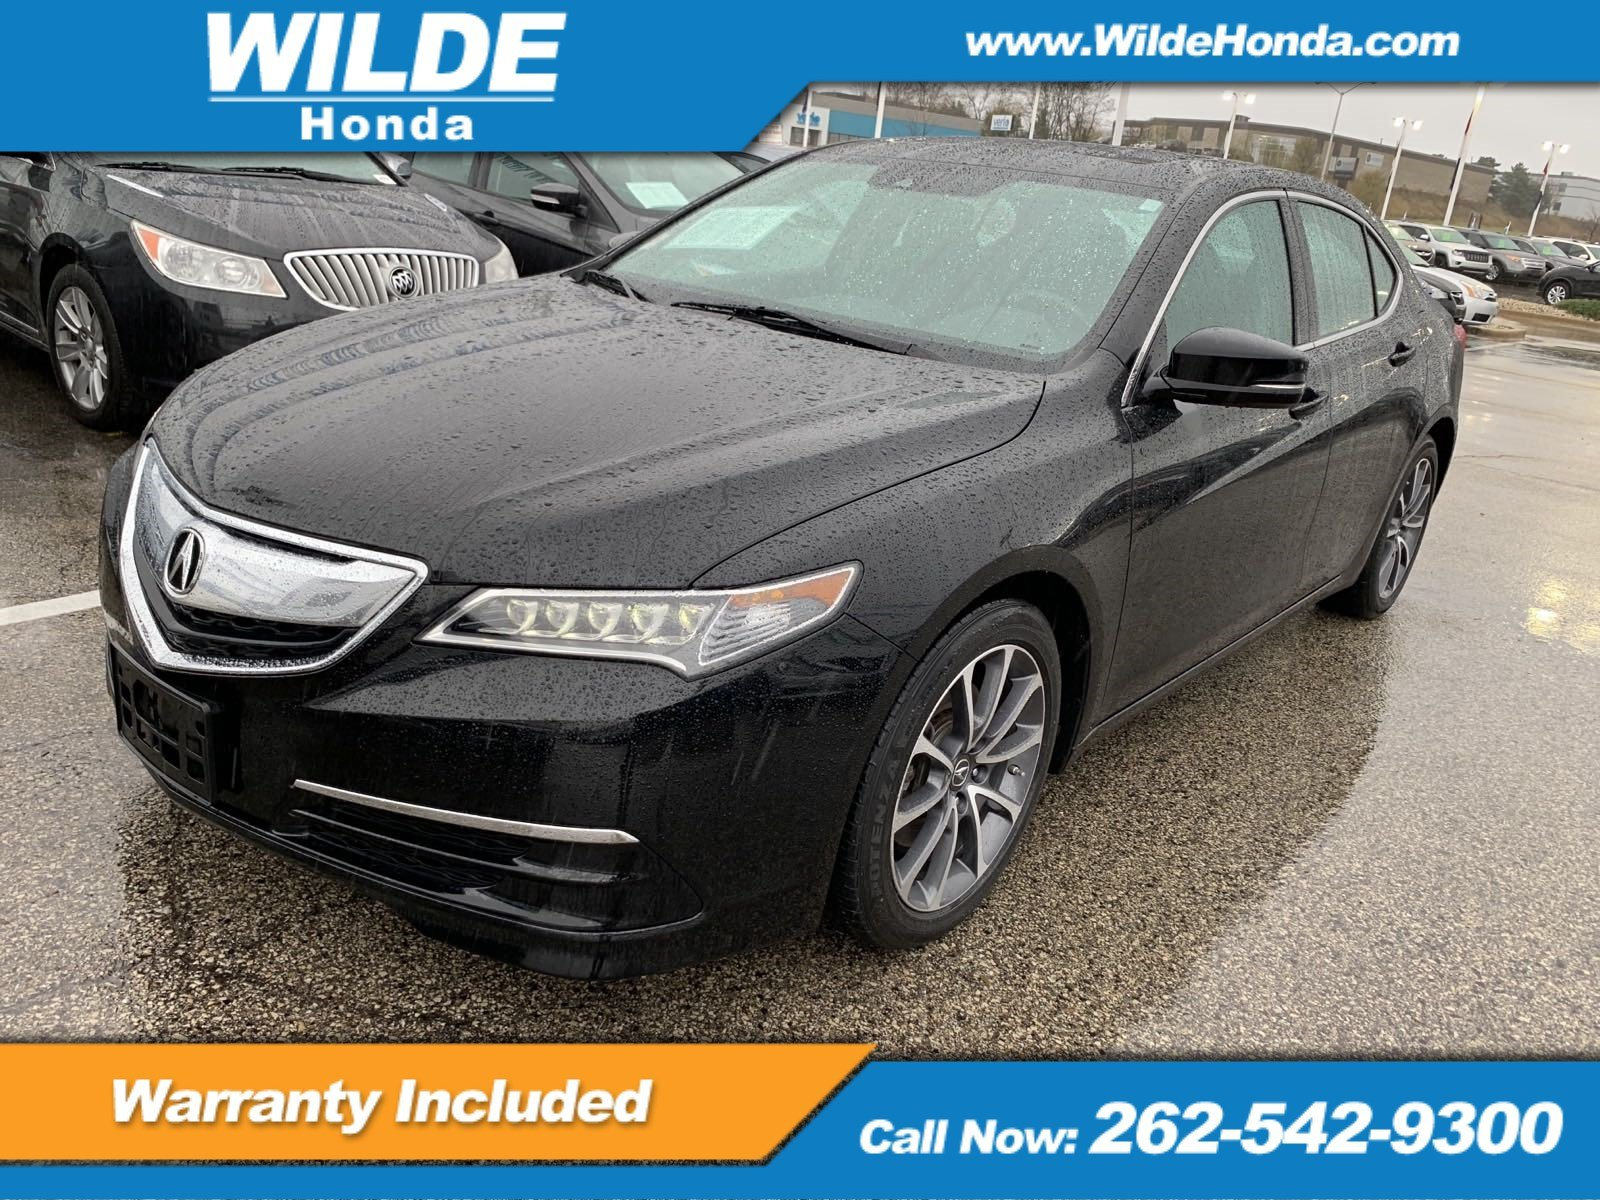 Pre Owned 2016 Acura TLX V6 Tech 4dr Car in